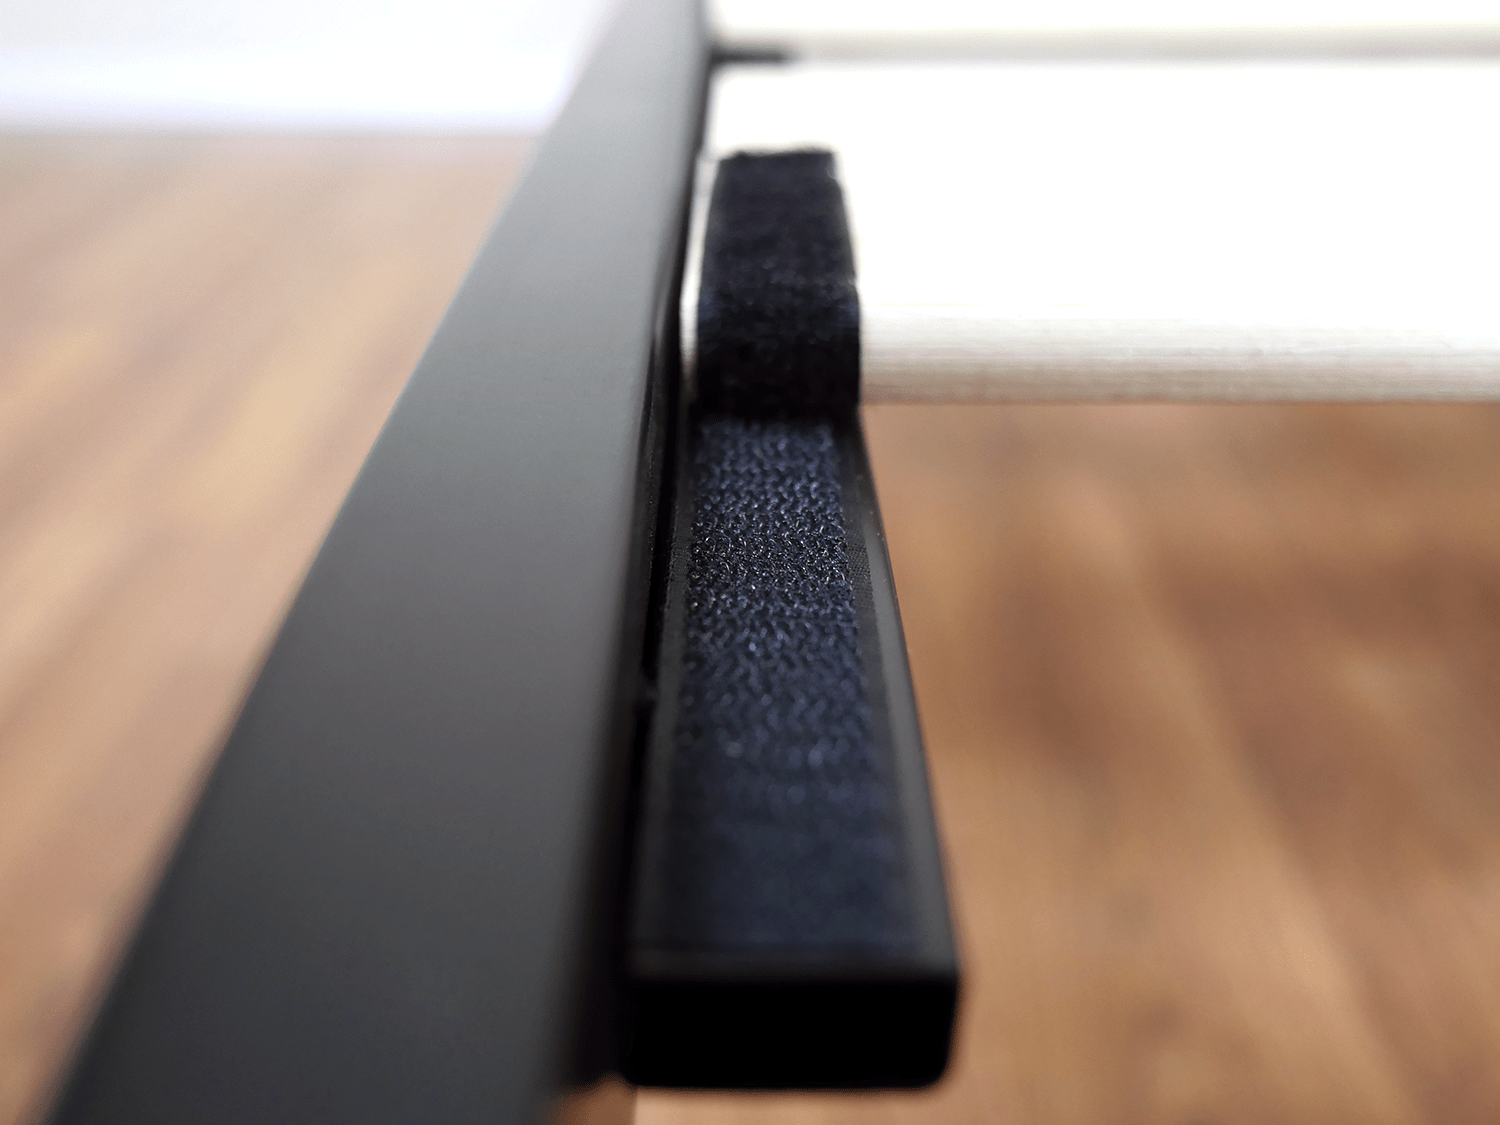 Close up shot of the velcro straps used to secure the wood on the Zinus platform bed